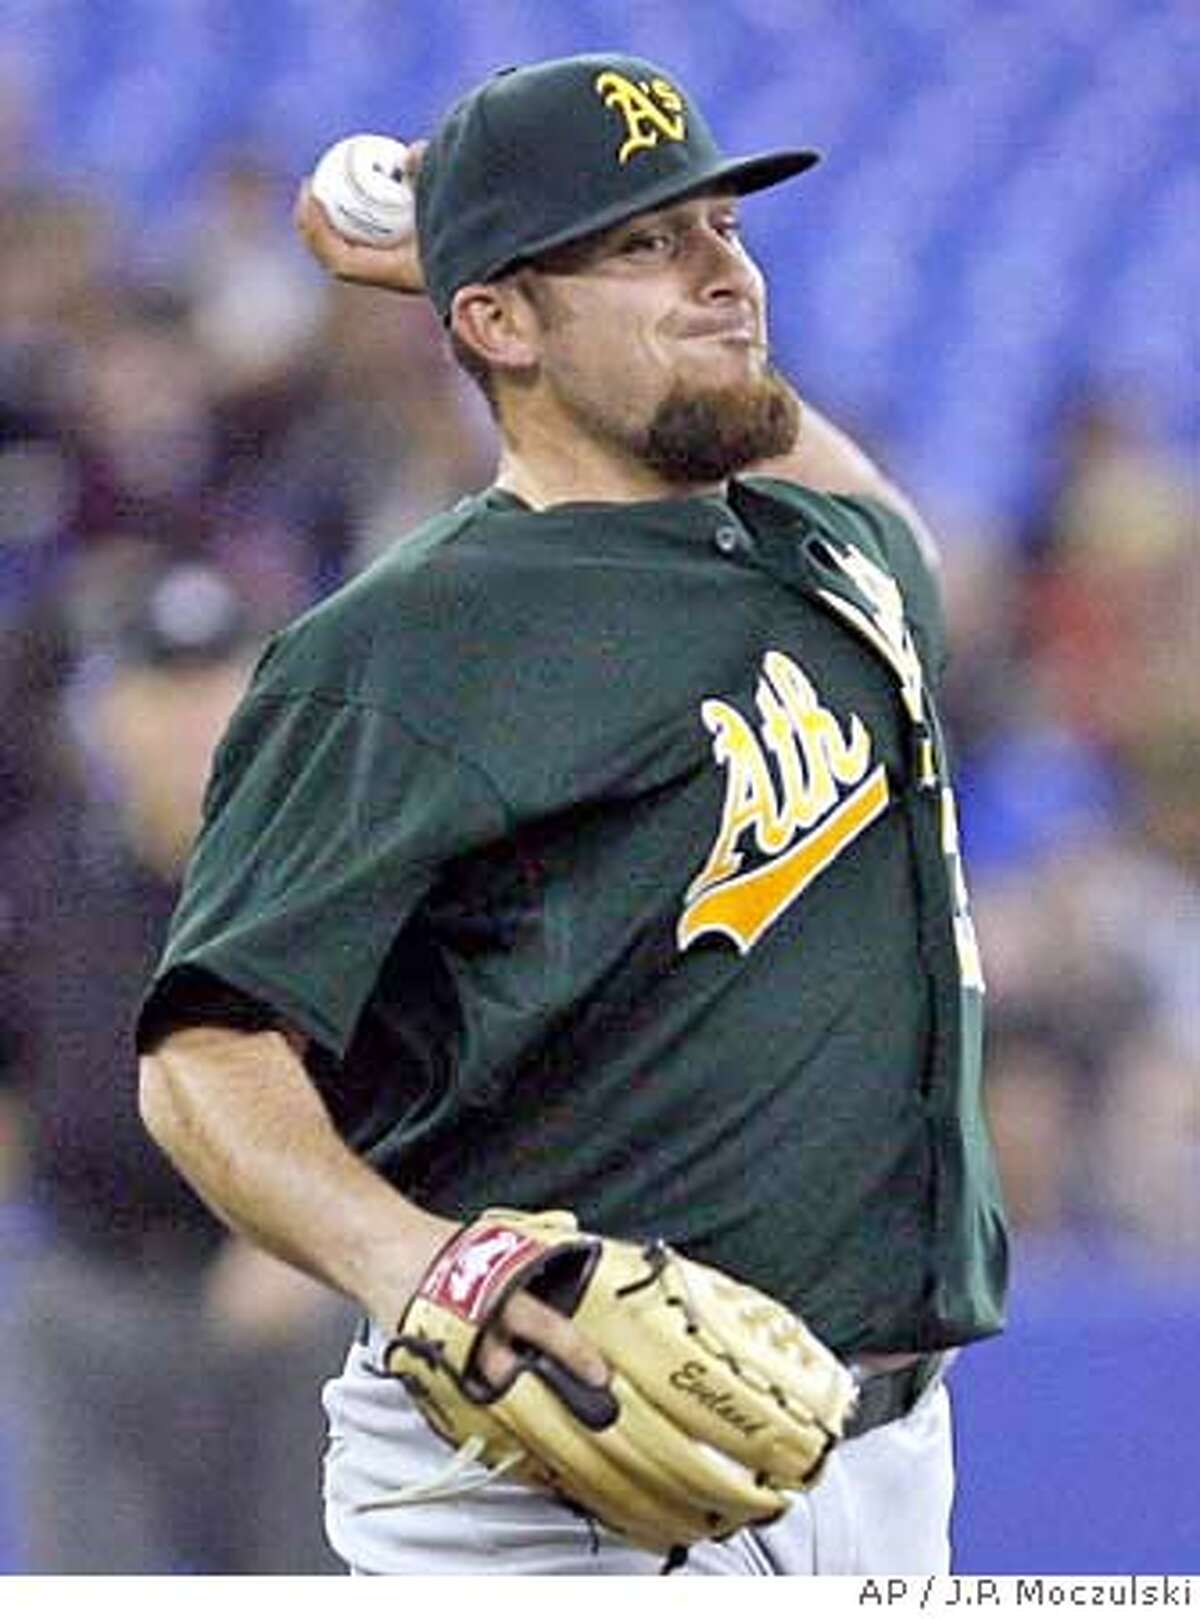 Oakland Athletics starter Dana Eveland throws back to first base during the fourth inning of an MLB baseball game against the Toronto Blue Jays in Toronto, Thursday, April 10, 2008. (AP Photo/The Canadian Press, J.P. Moczulski)